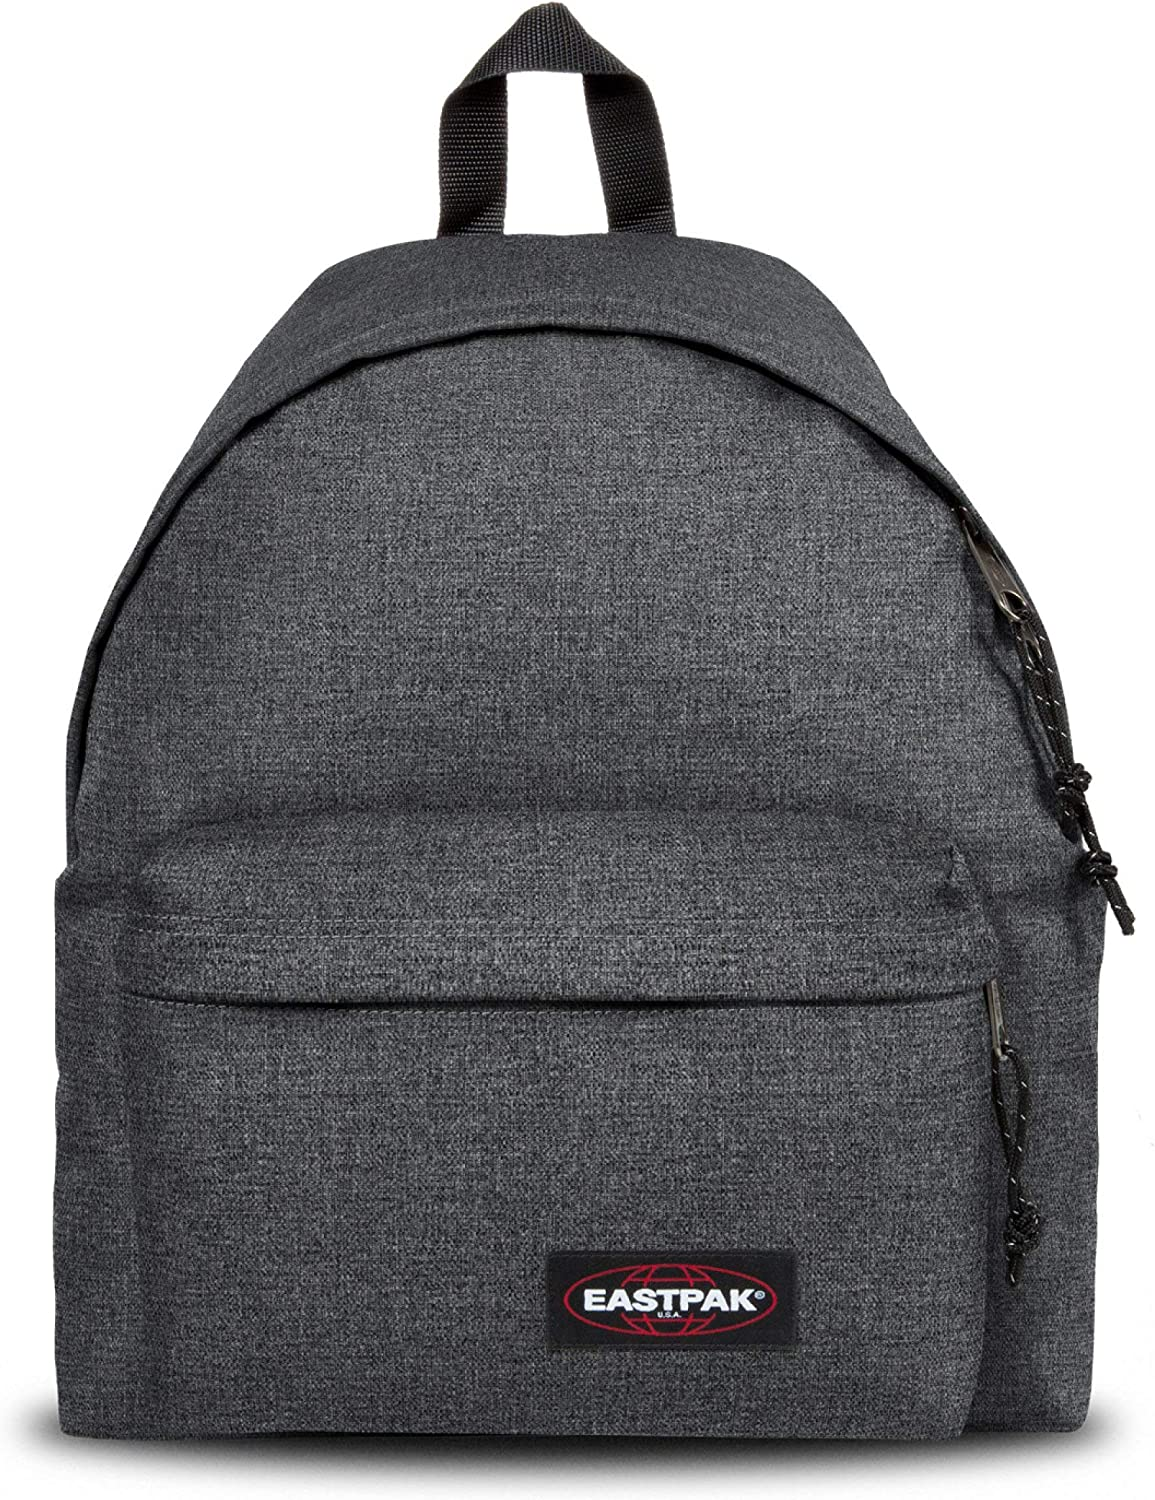 Eastpak Women's Padded Pak'r Backpack, Black Denim, One Size